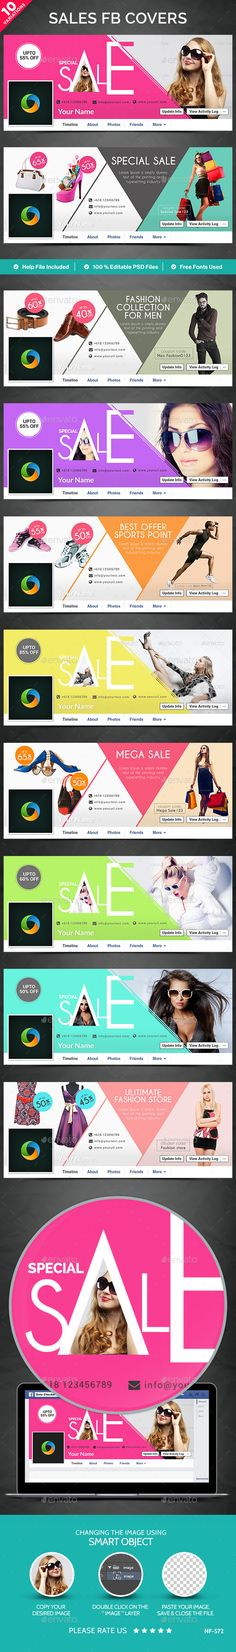 Sales Facebook Covers - 10 Designs Template #design Download: http://graphicriver.net/item/sales-facebook-covers-10-designs/12482702?ref=ksioks